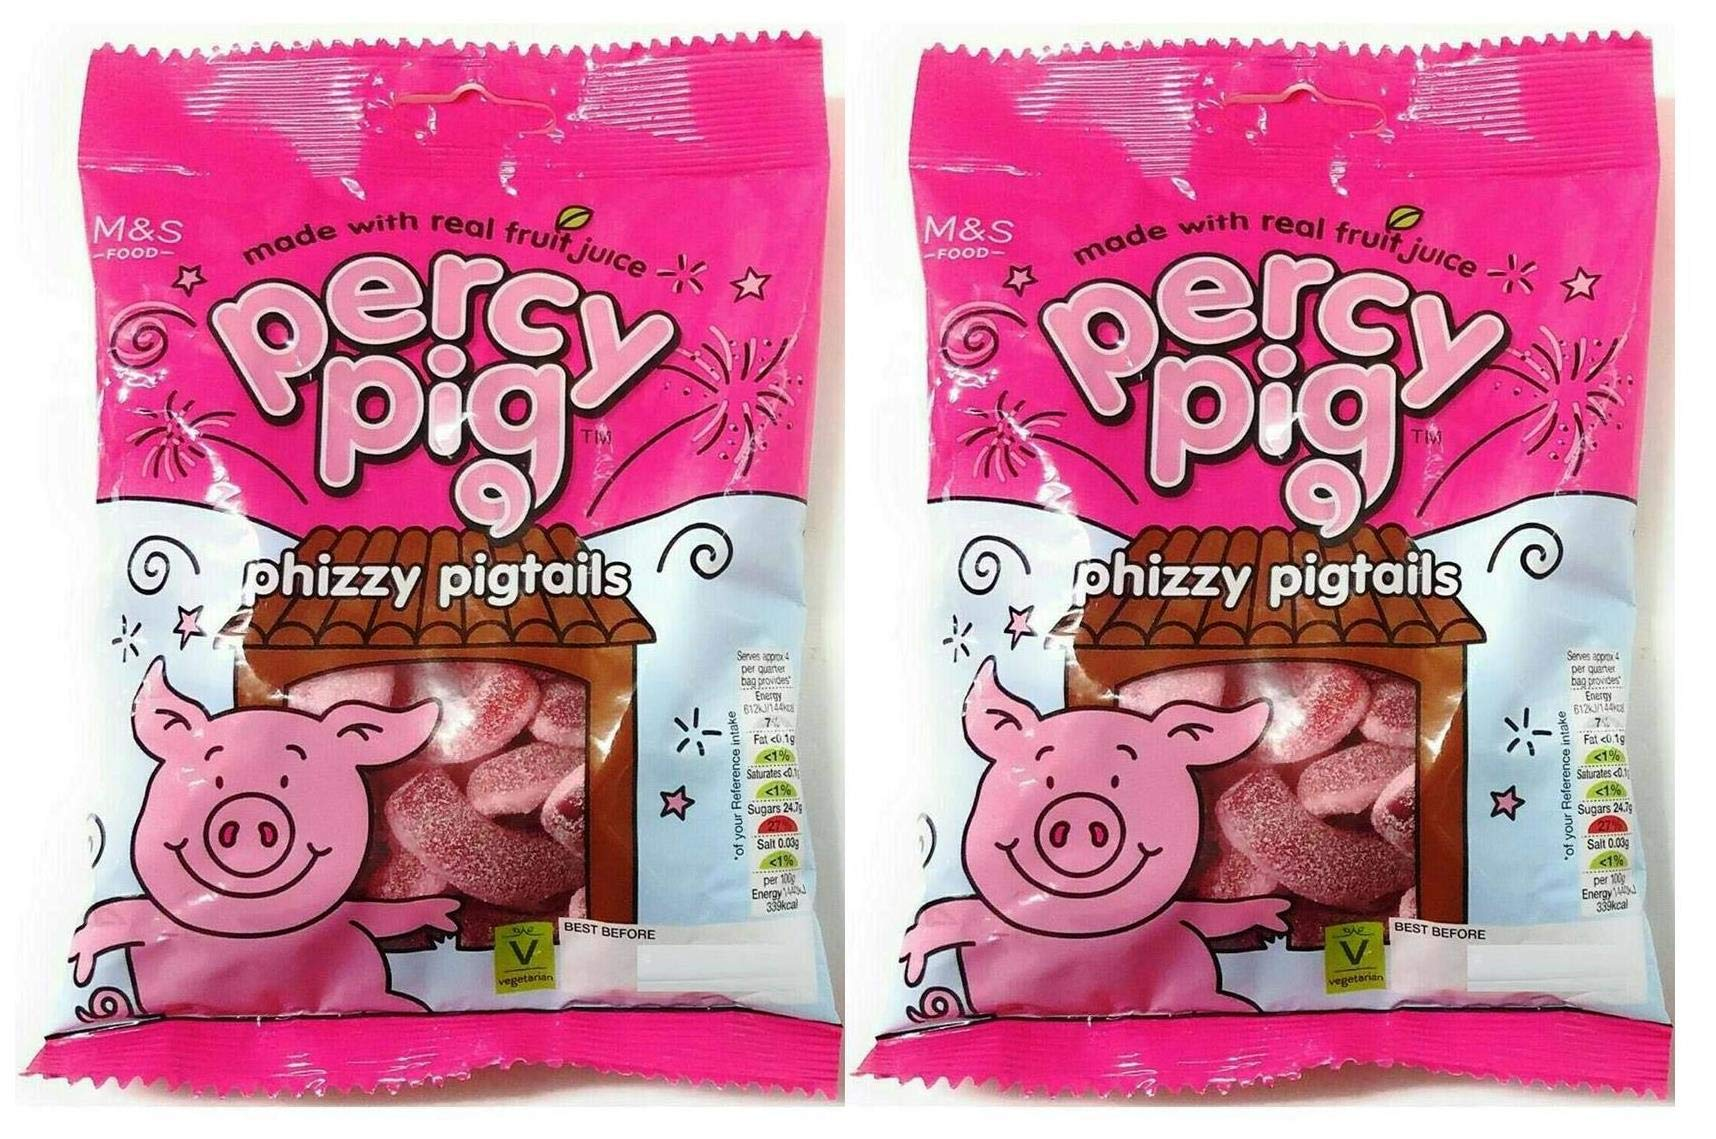 Marks & Spencer   Percy Pigs -Phizzy Pig Tails   2 x 170g Bags